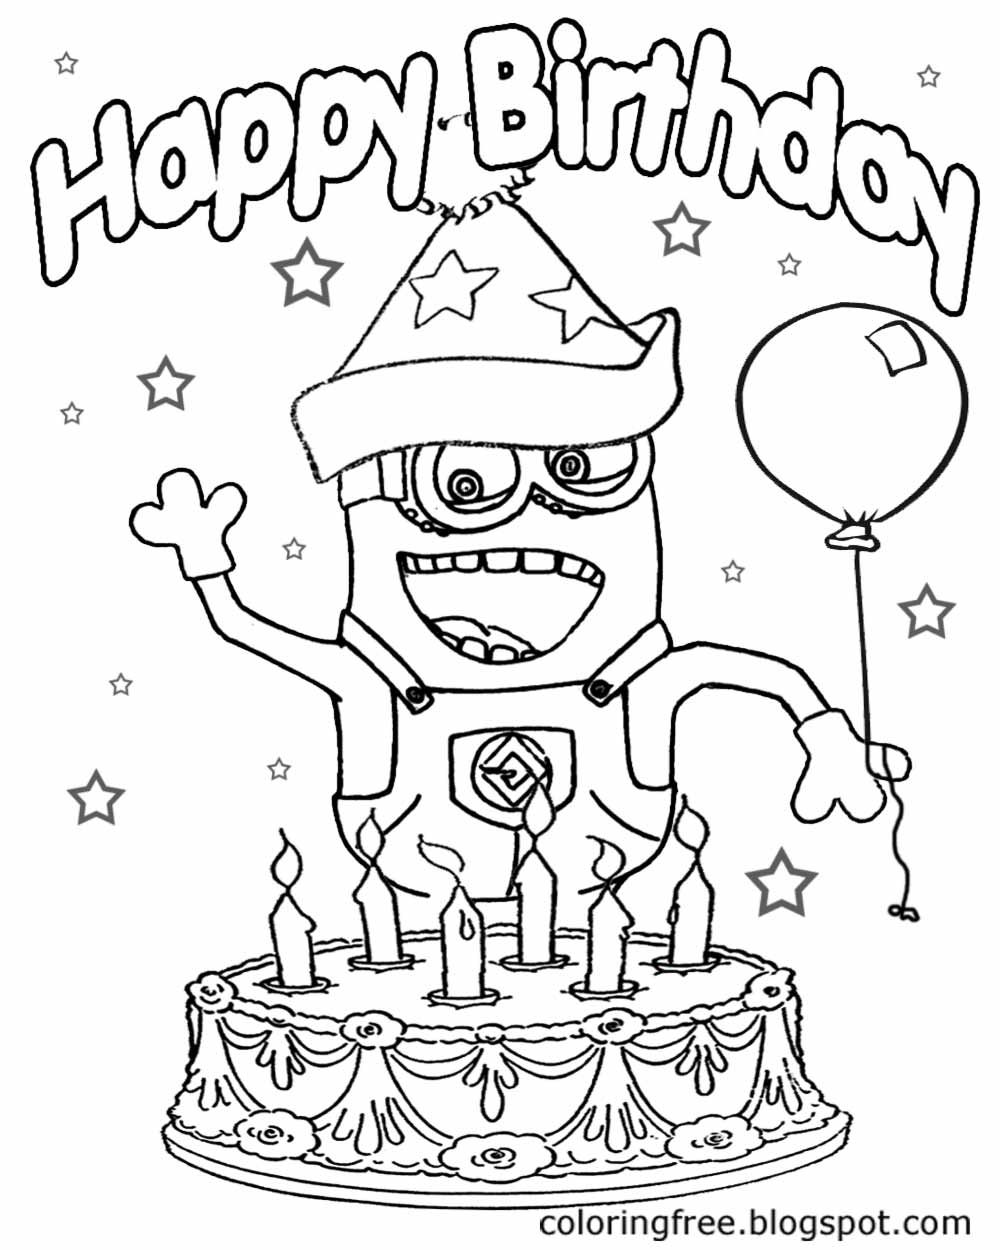 Big party cake with candles happy birthday minion coloring ...